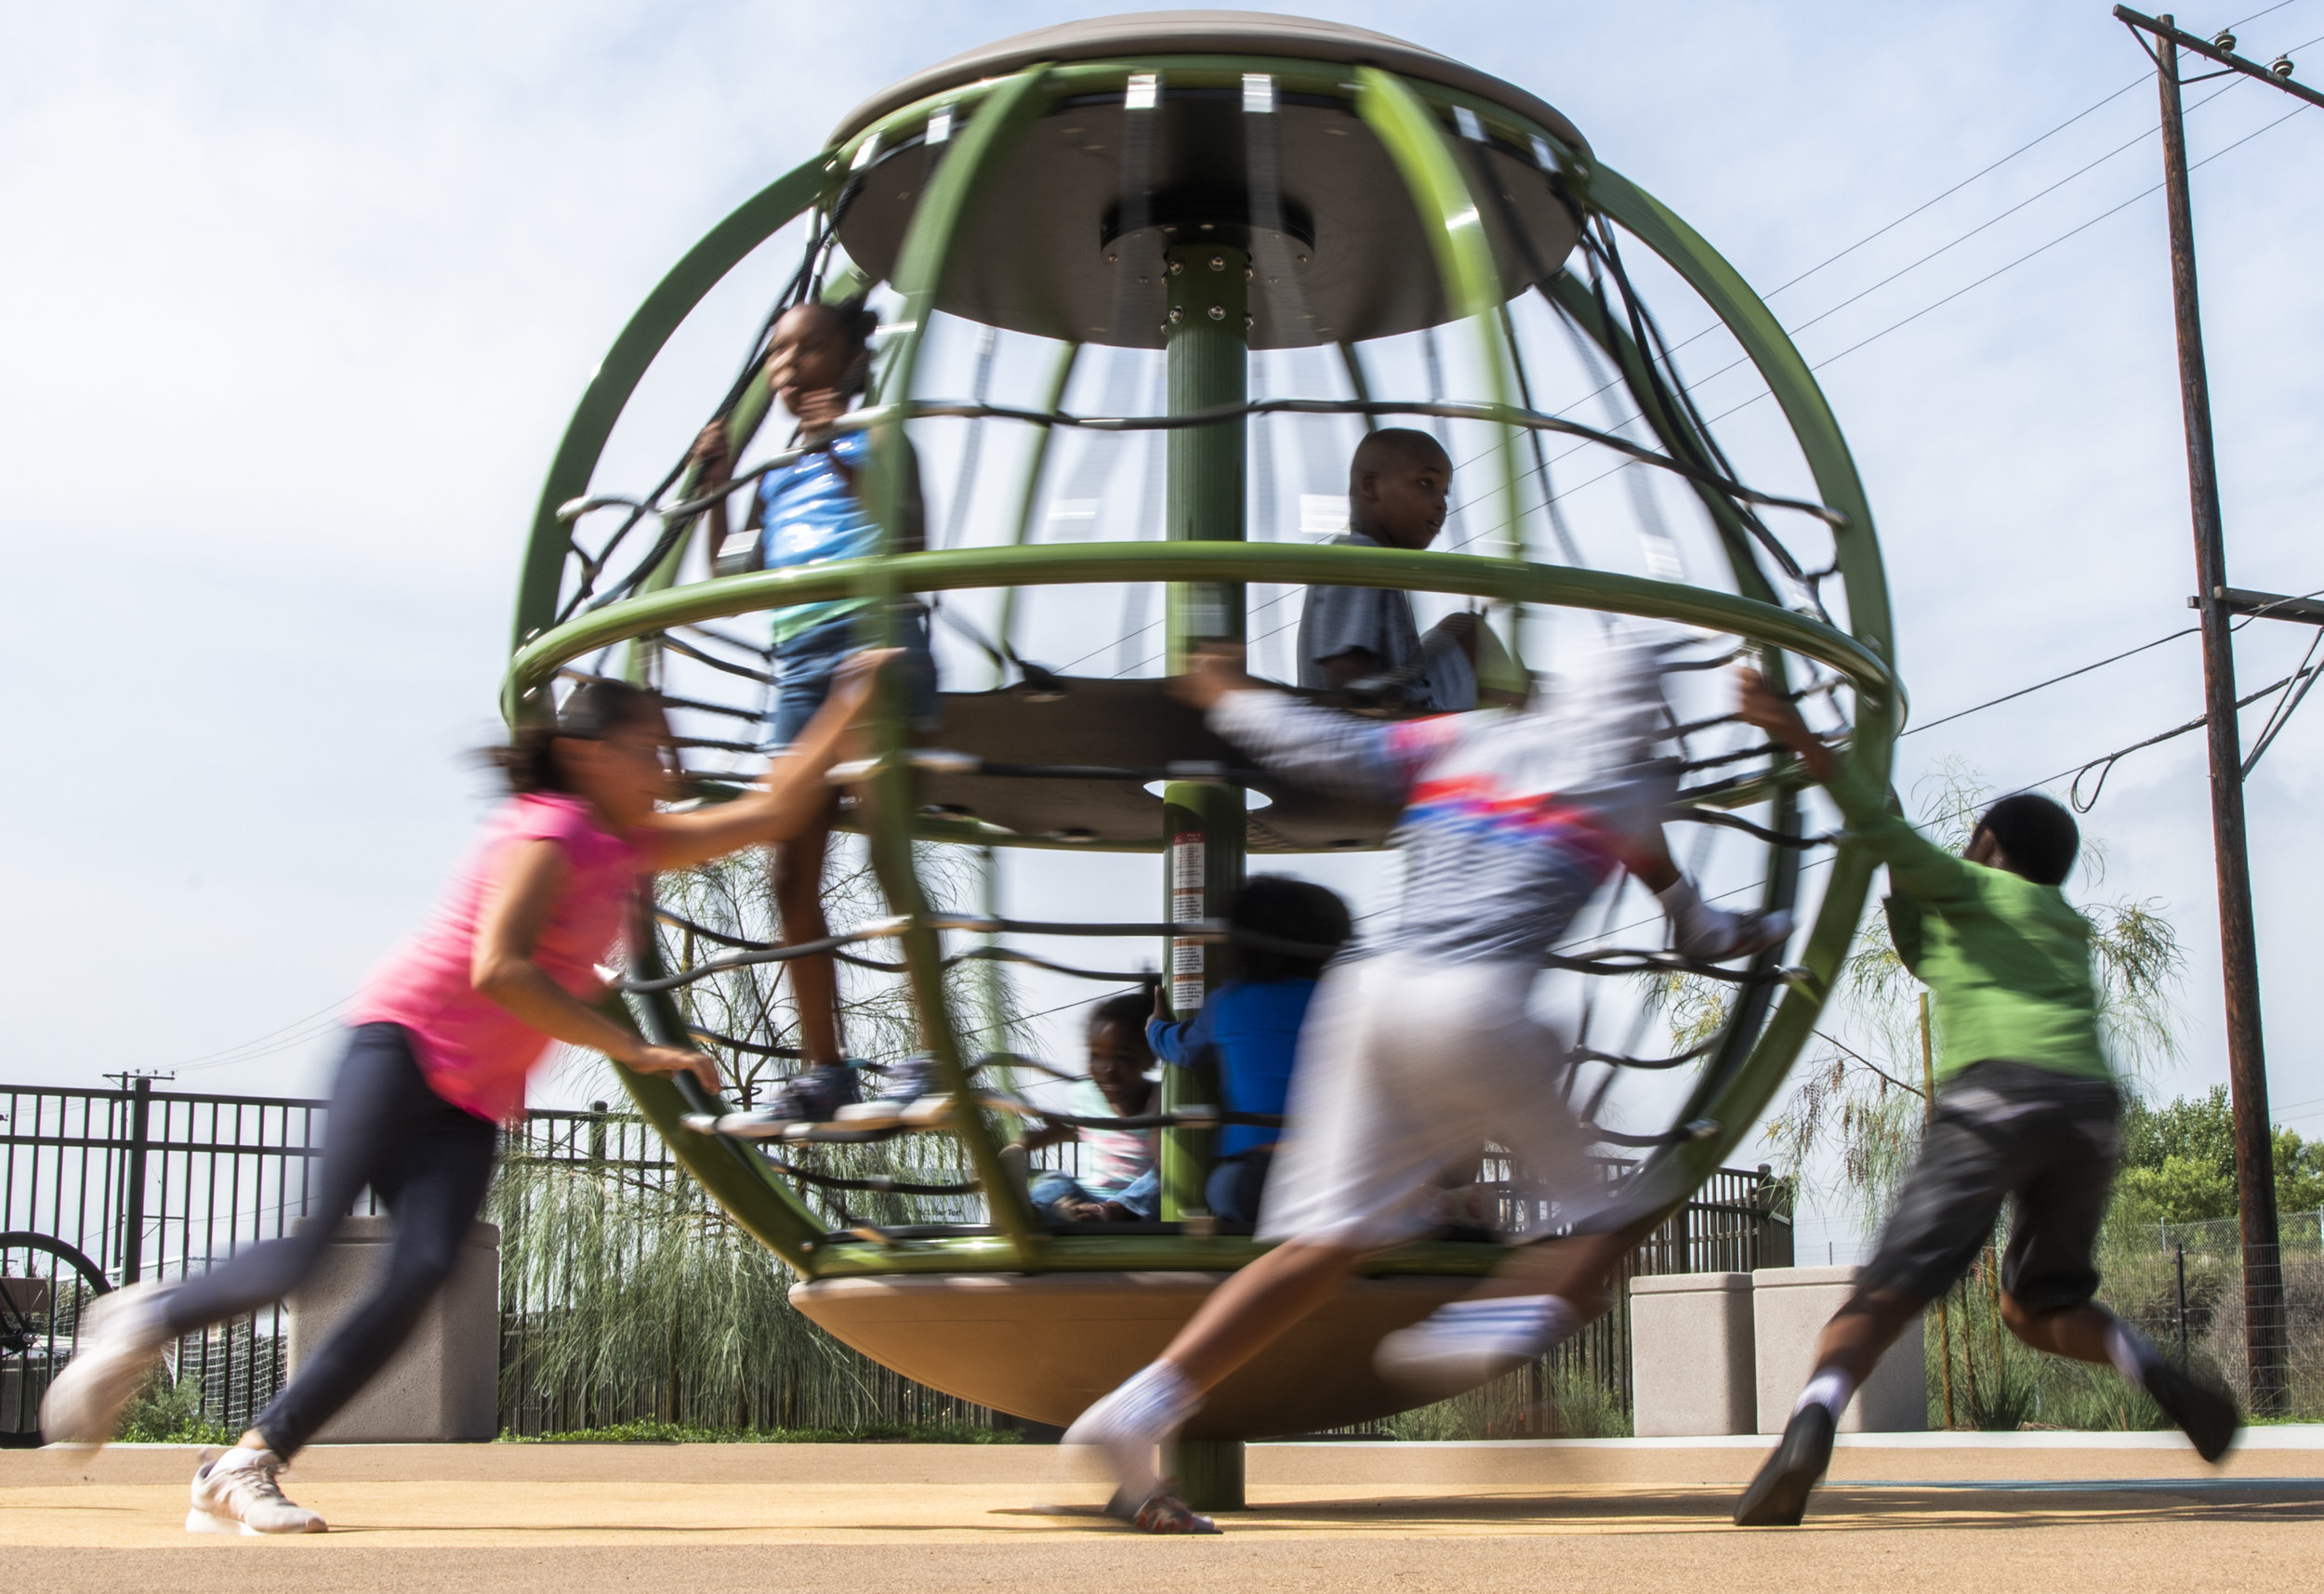 Kids spin a glob like a merry-go-round during the grand opening of David Molina Park in Long Beach August 28, 2018.